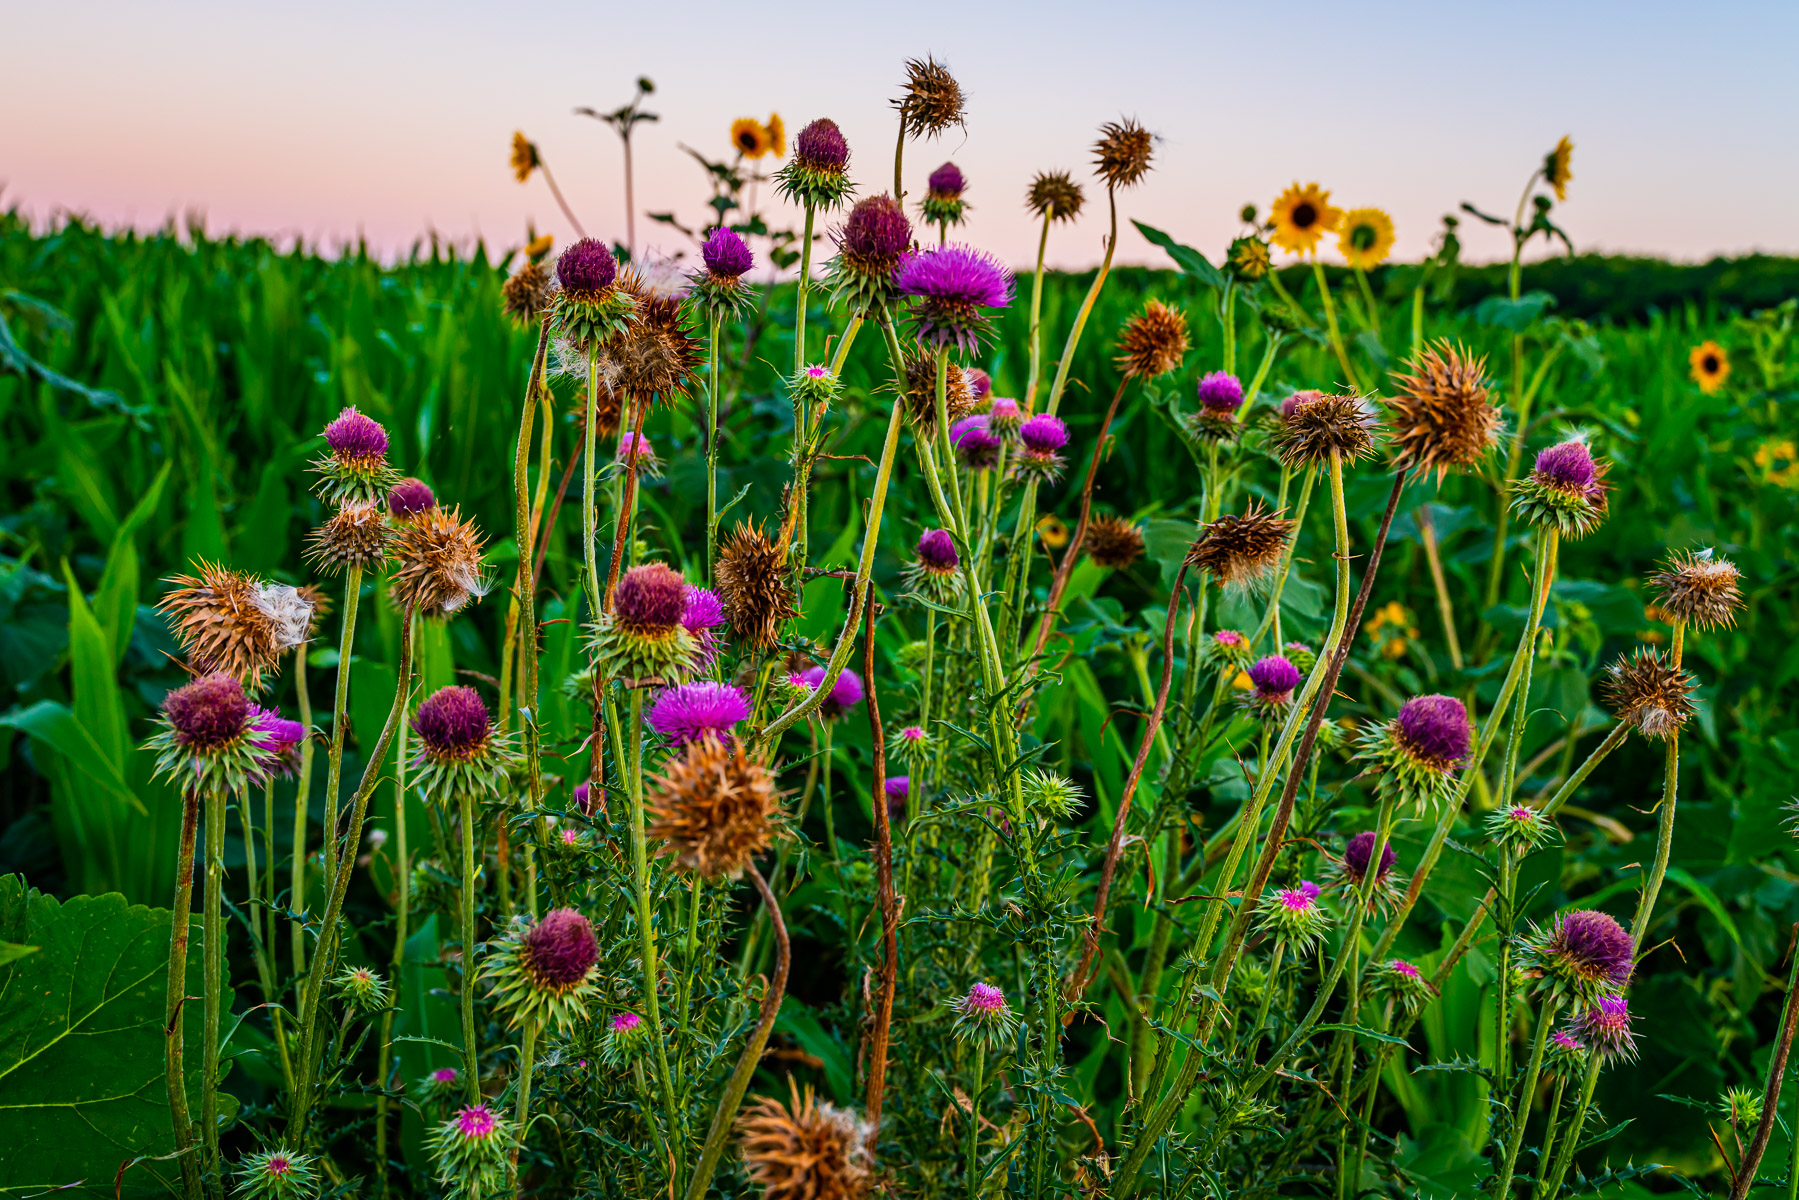 Nodding thistles grow in a farm field near McKinney, Texas.